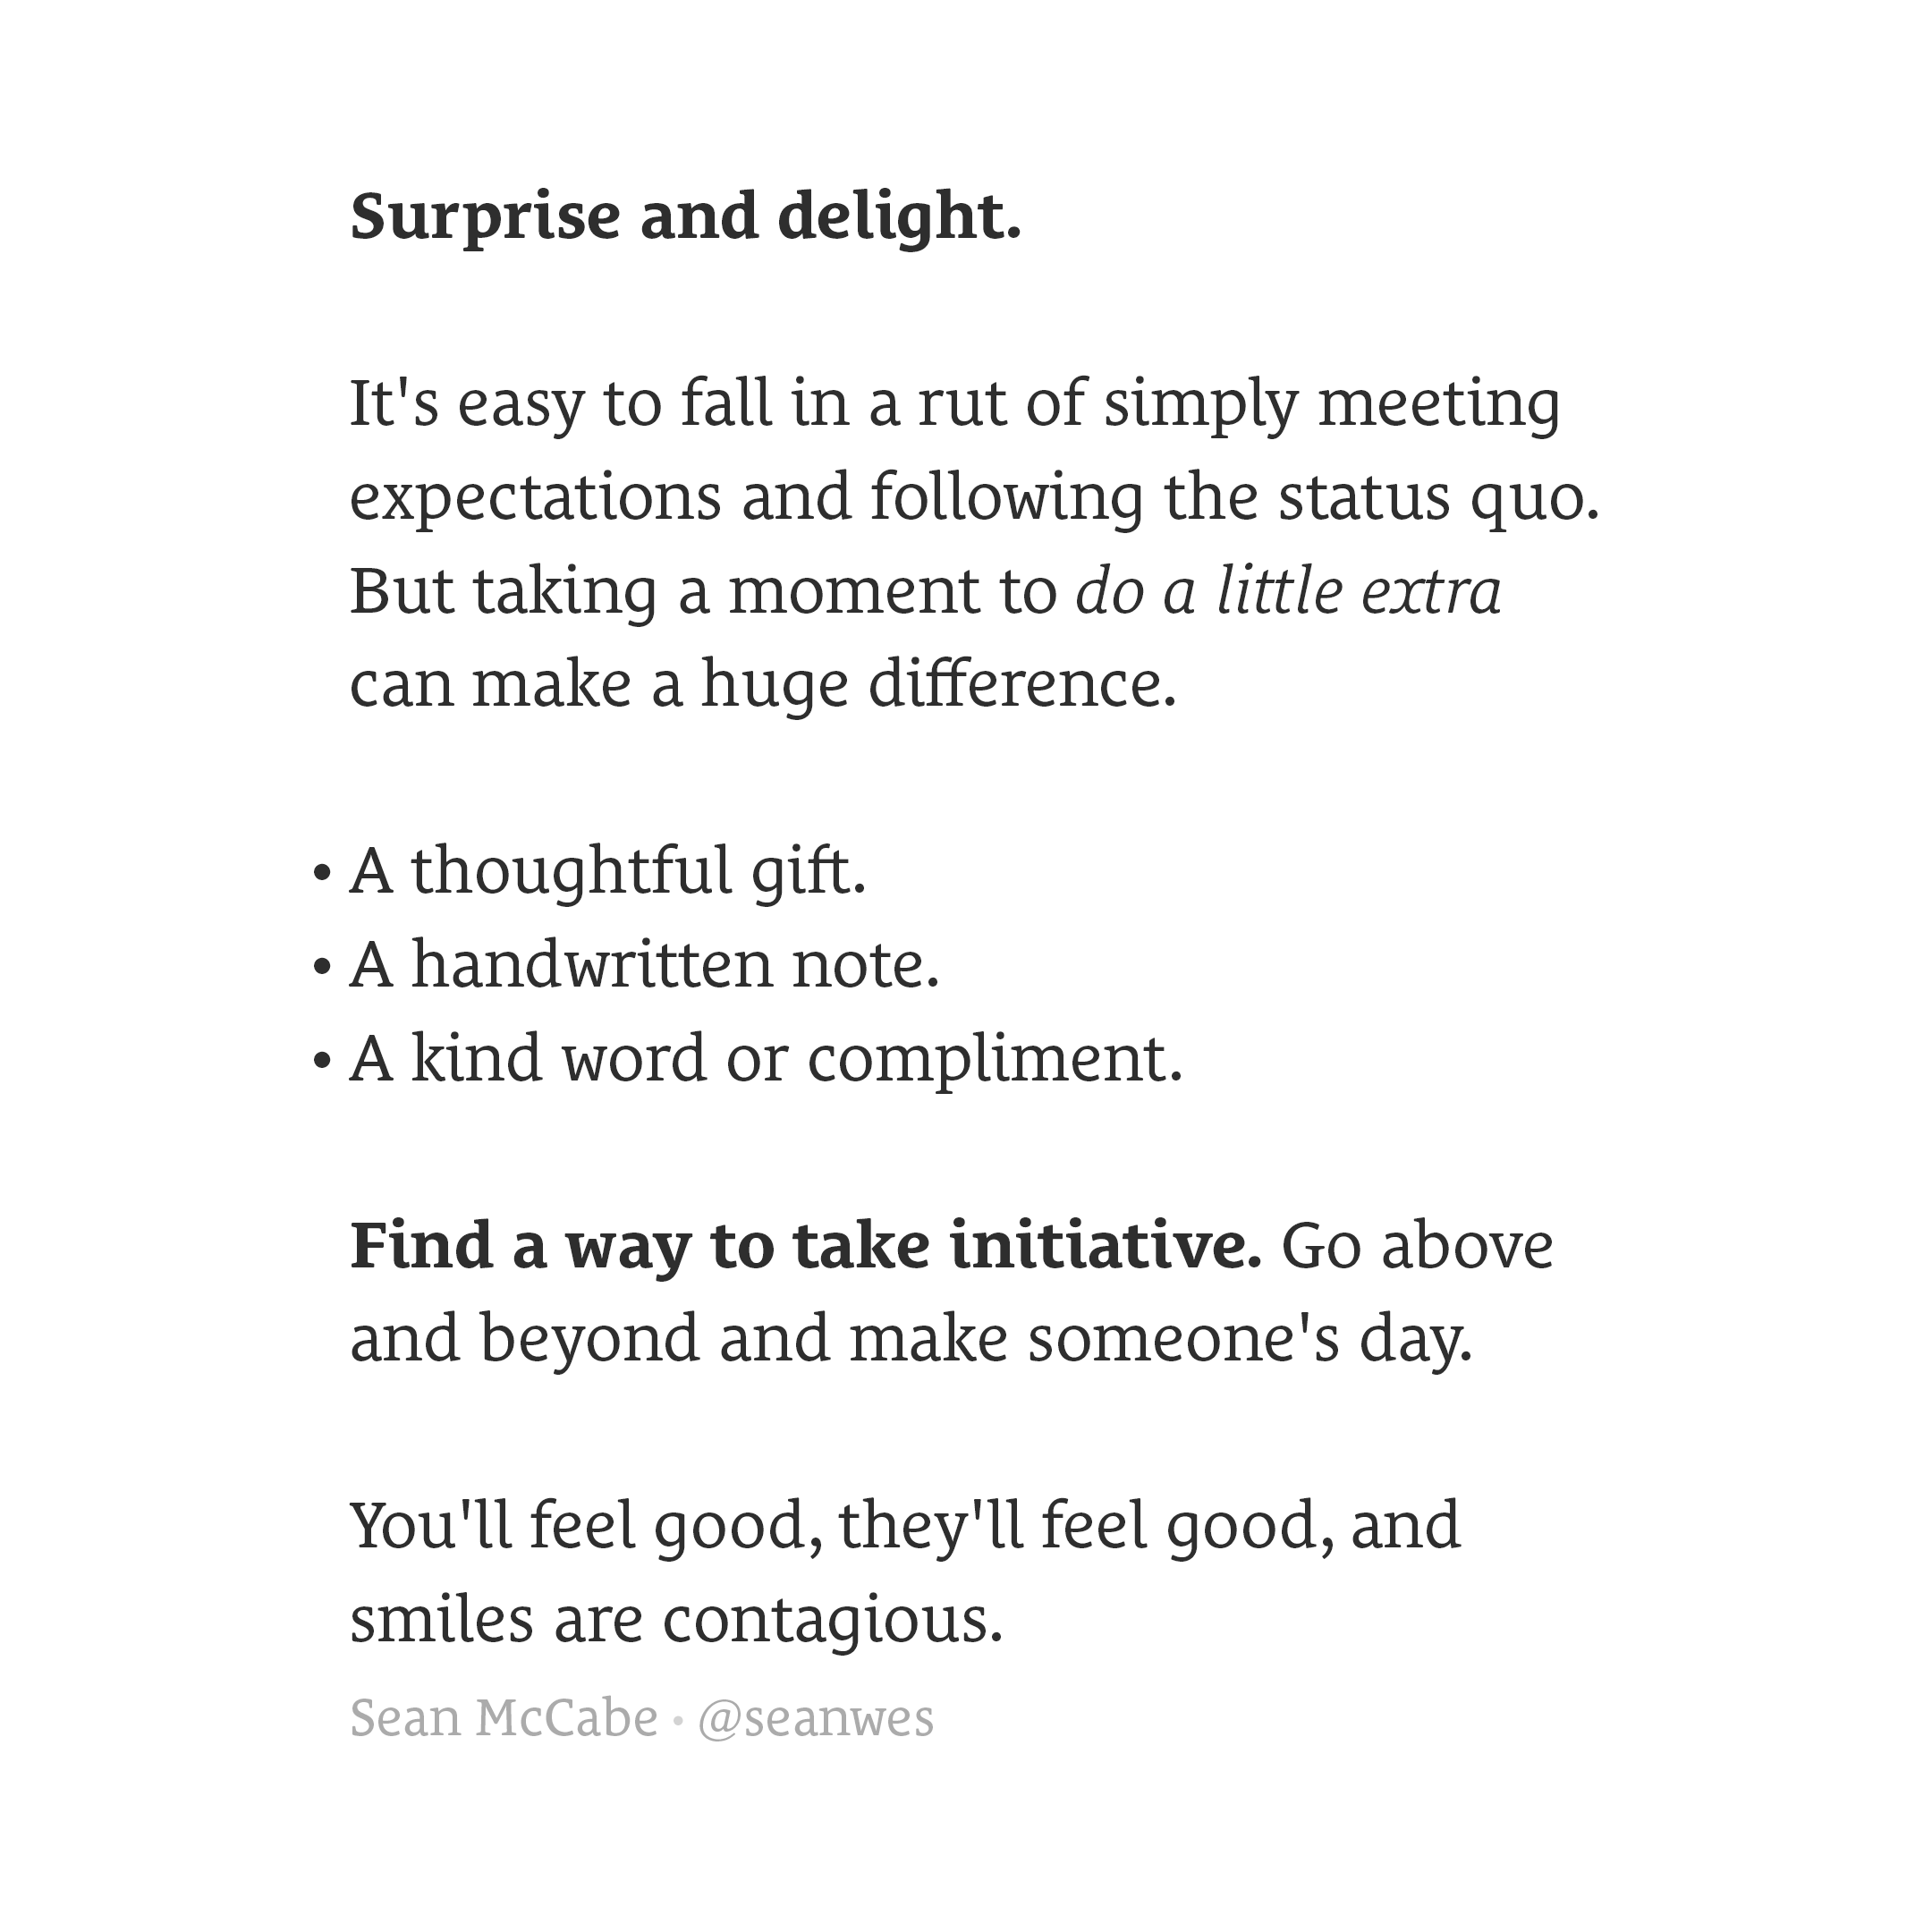 Surprise and delight.